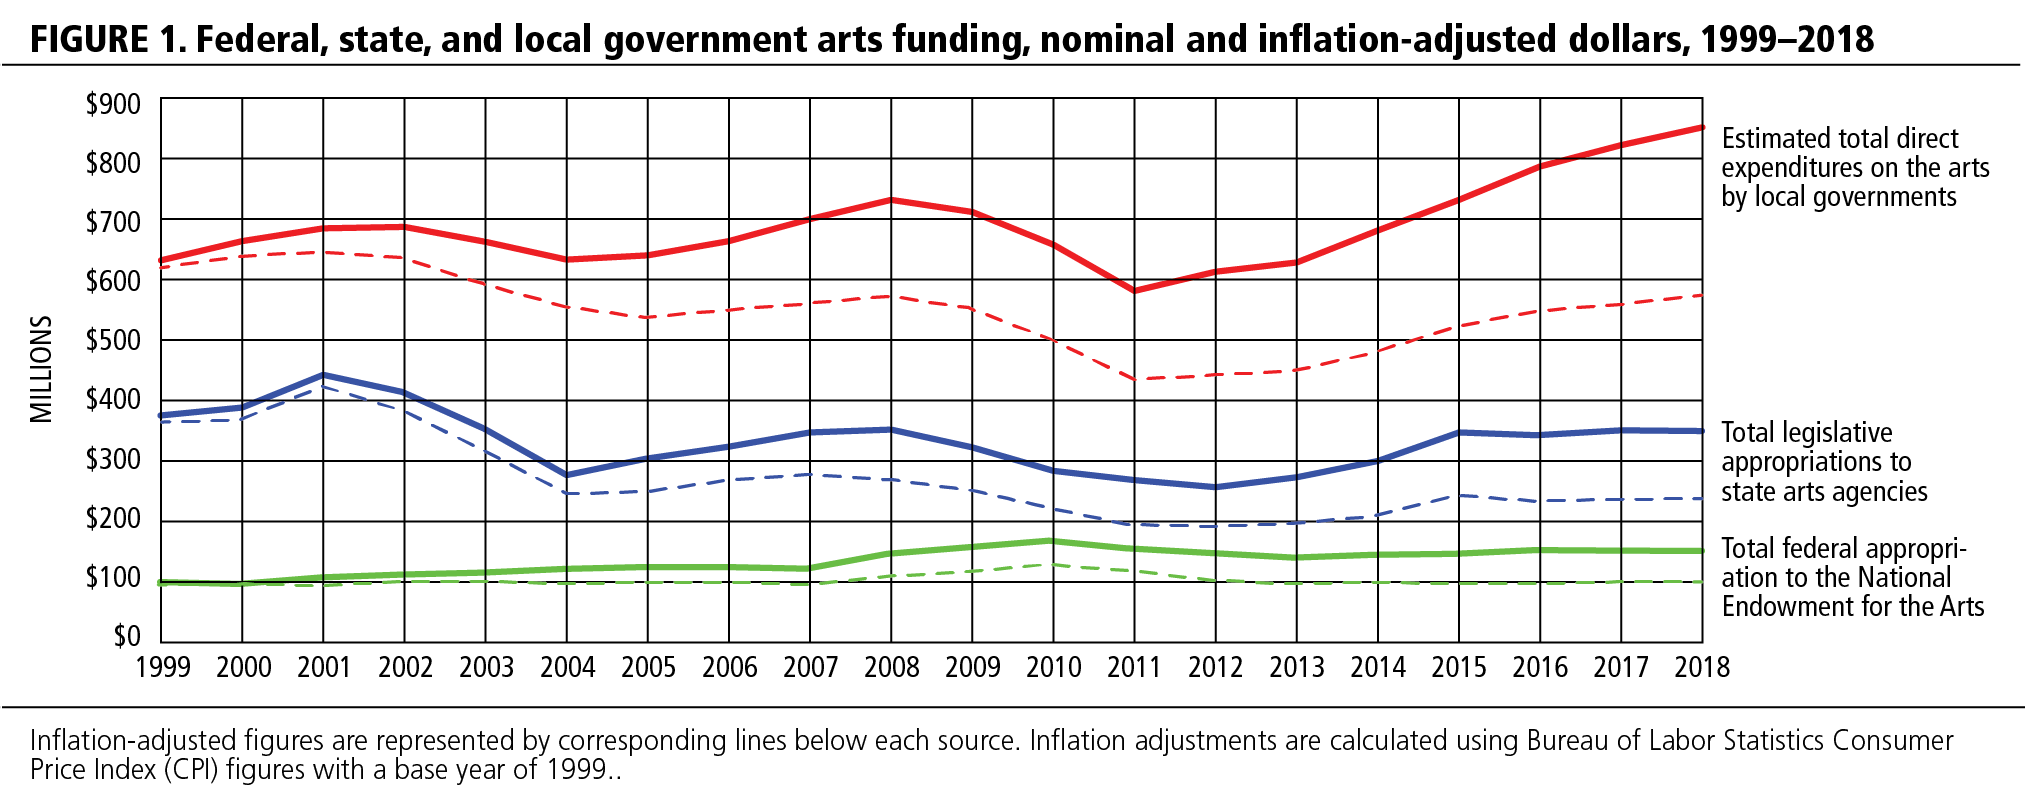 FIGURE 1. Federal, state, and local government arts funding, nominal and inflation-adjusted dollars, 1999-2018